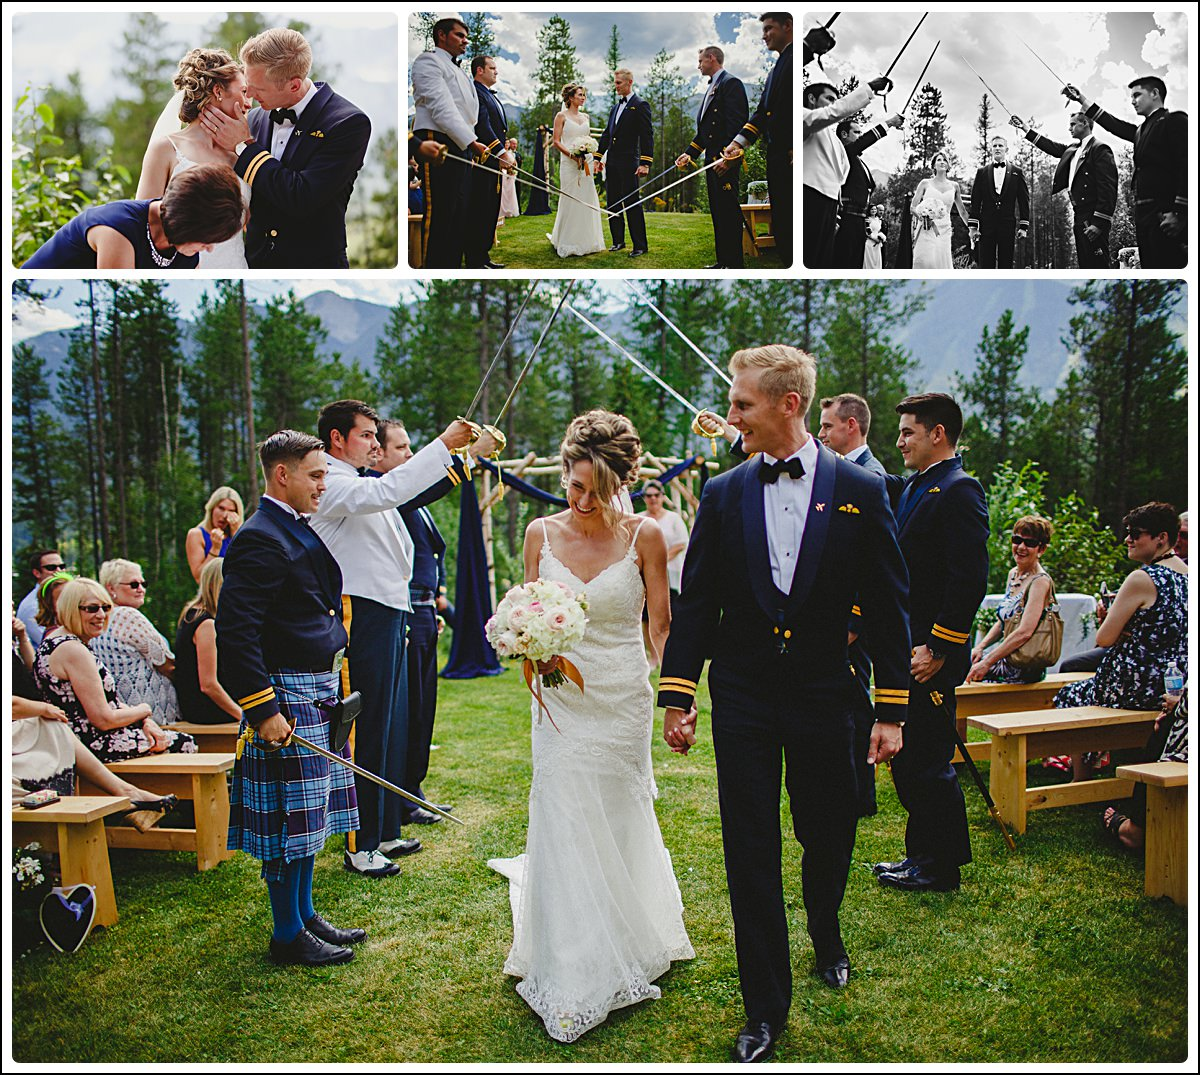 6:8 Photography,6:8 Wedding Photography,Destination Wedding,Elkview Lodge,Fernie,Fernie Wedding,July 2016,Paula,Rocky Mountain Wedding,Theon,Wedding,